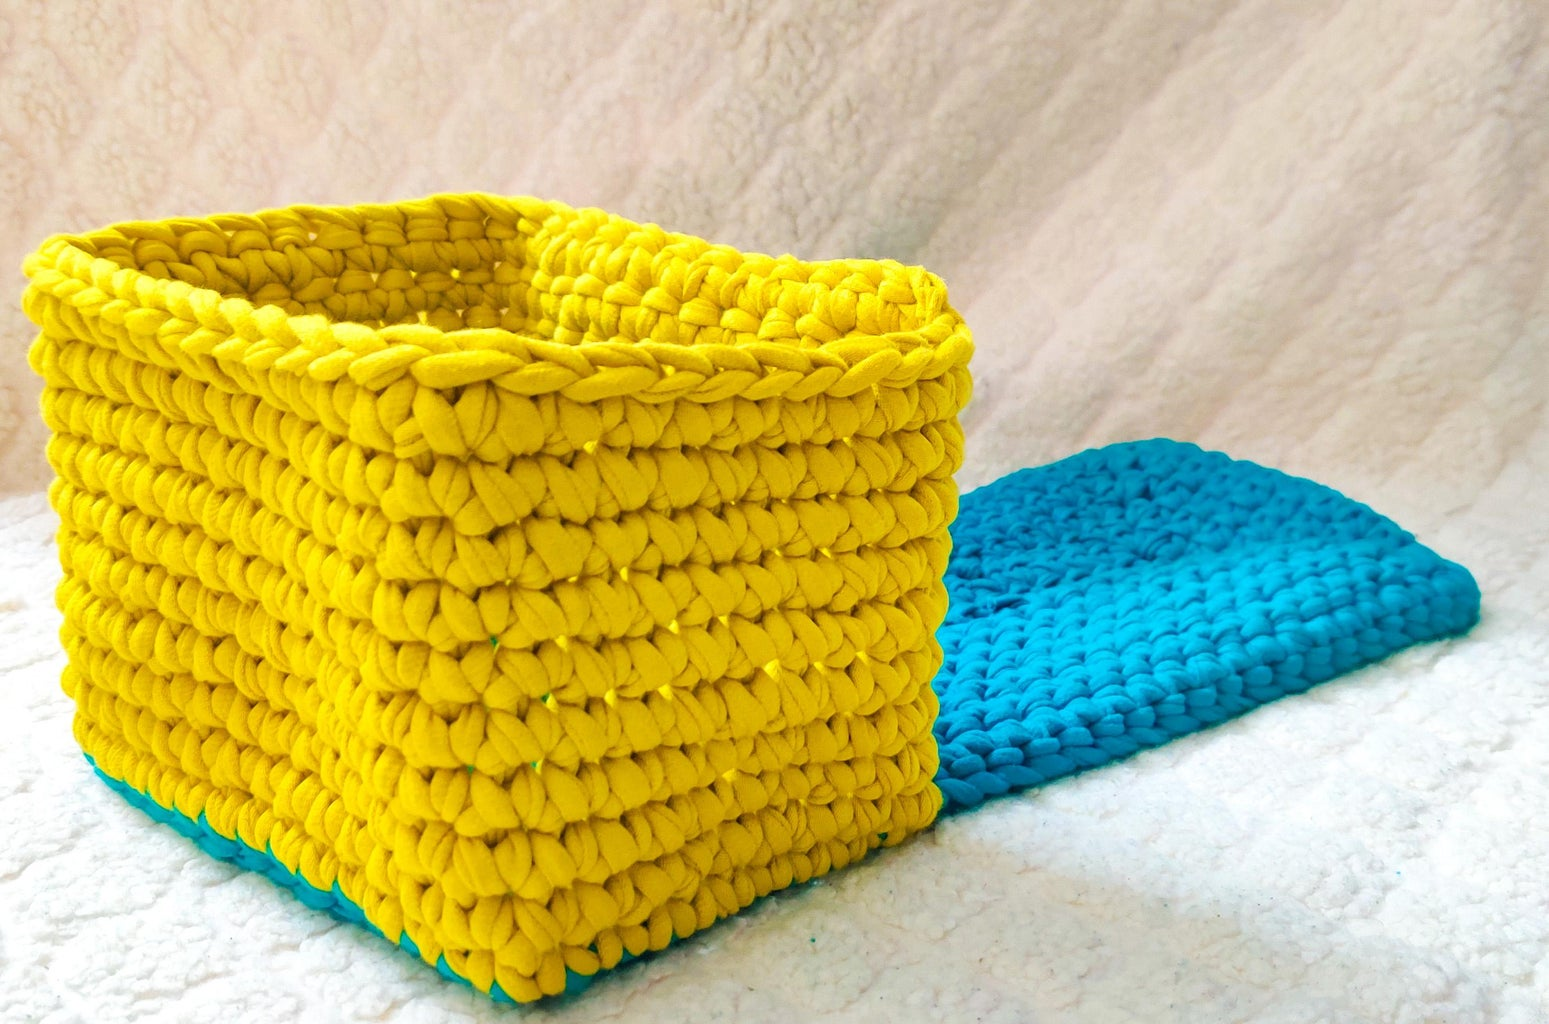 Sides of the Truck Basket:-